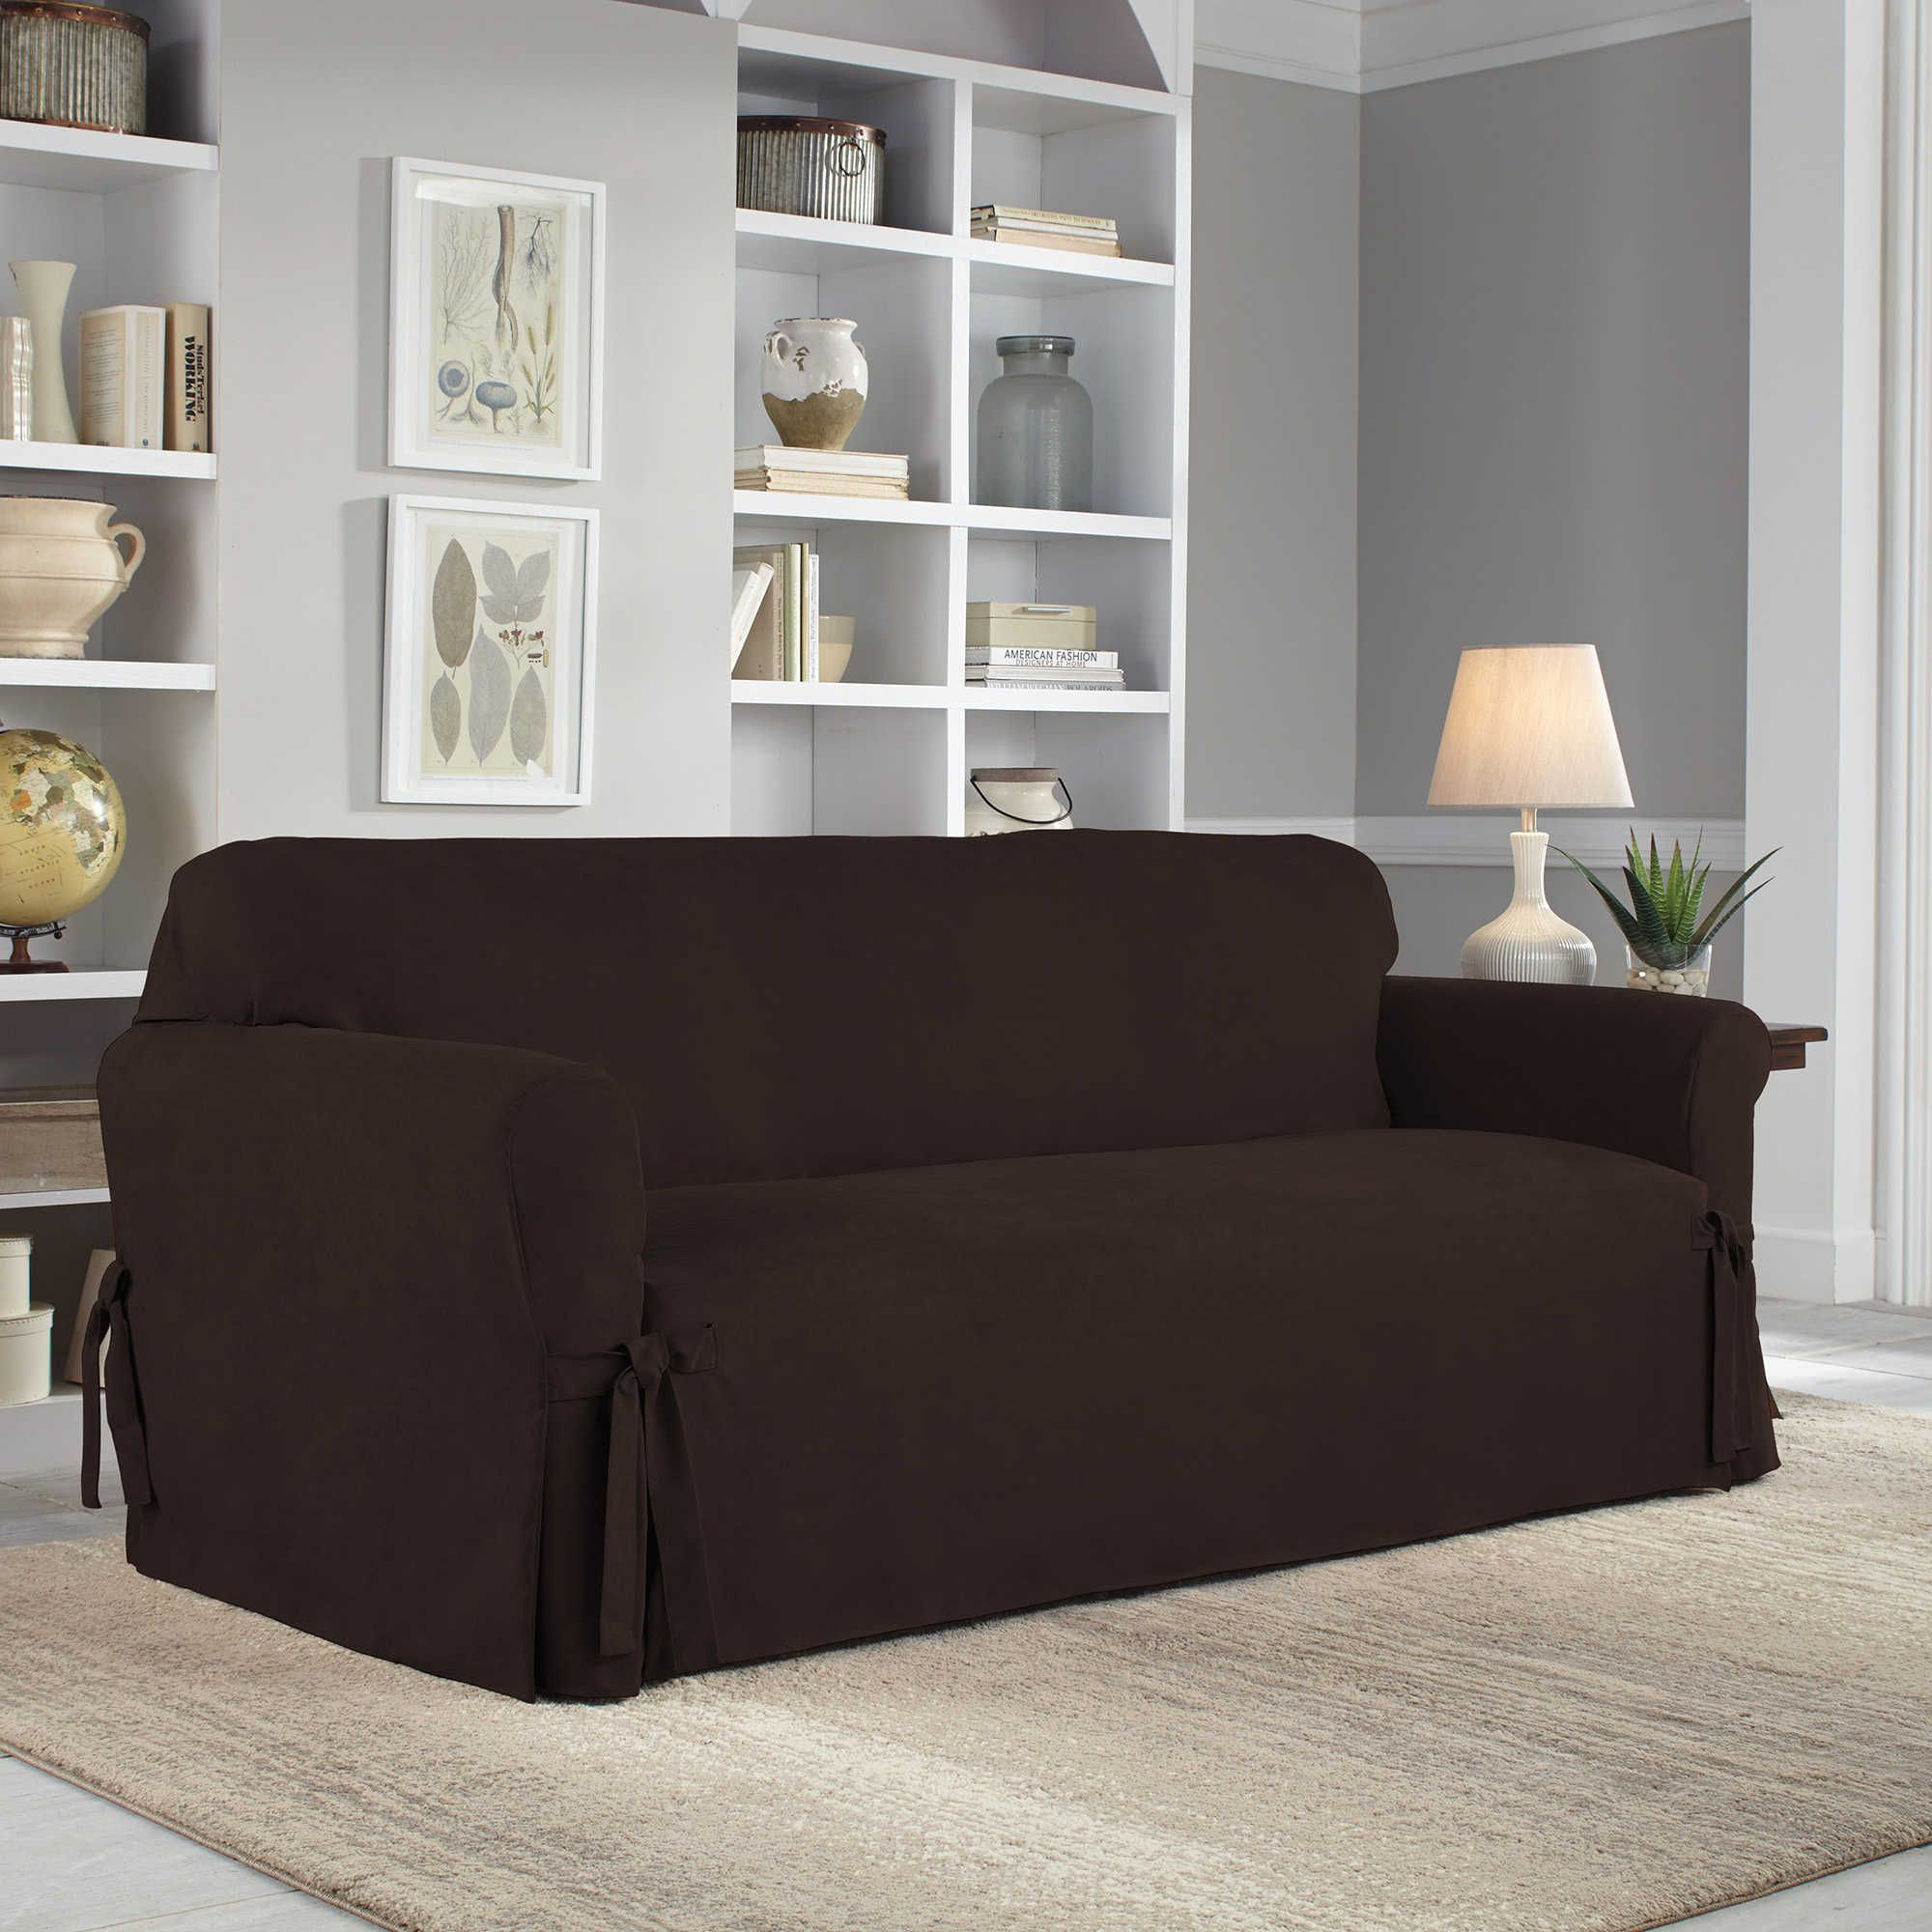 Perfect Fit Smooth Suede Relaxed Fit Sofa Slipcover